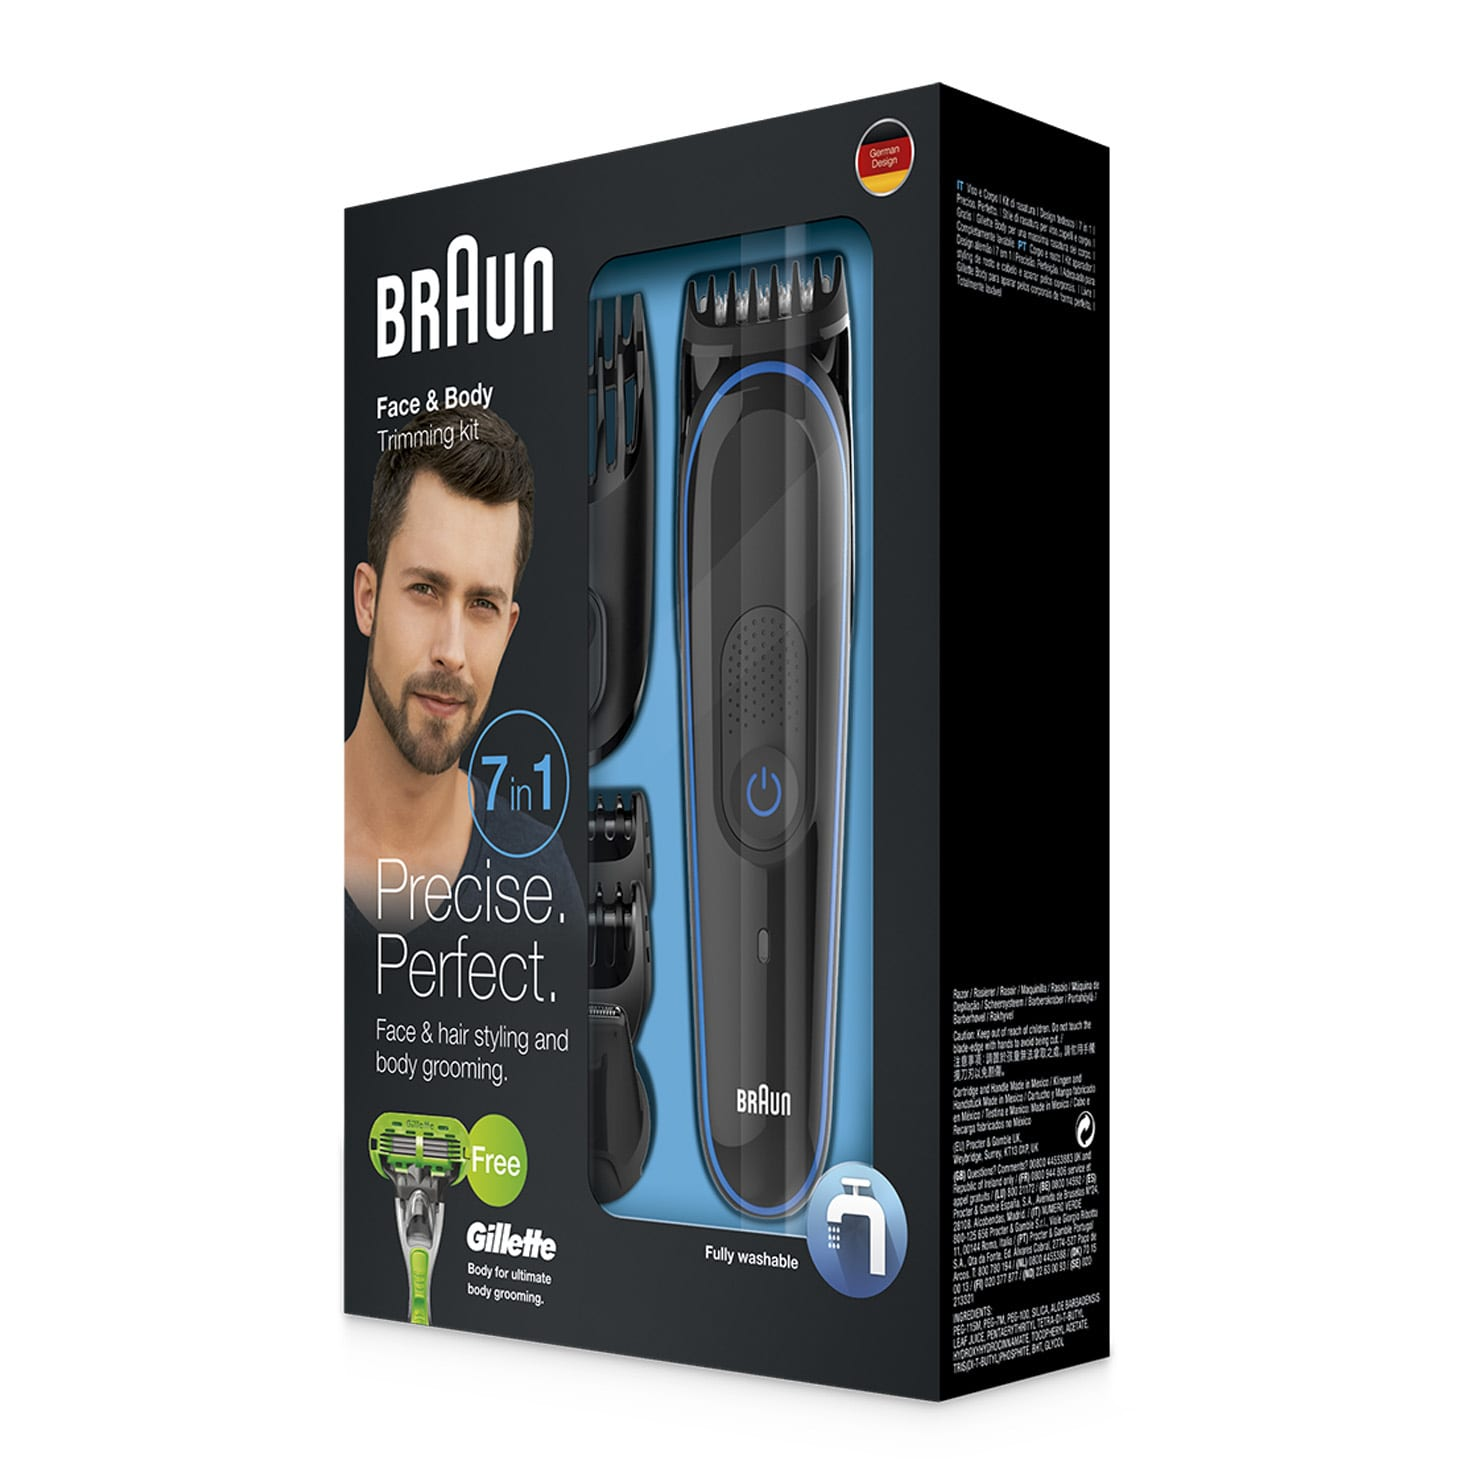 Braun multi grooming kit MGK3040 packaging